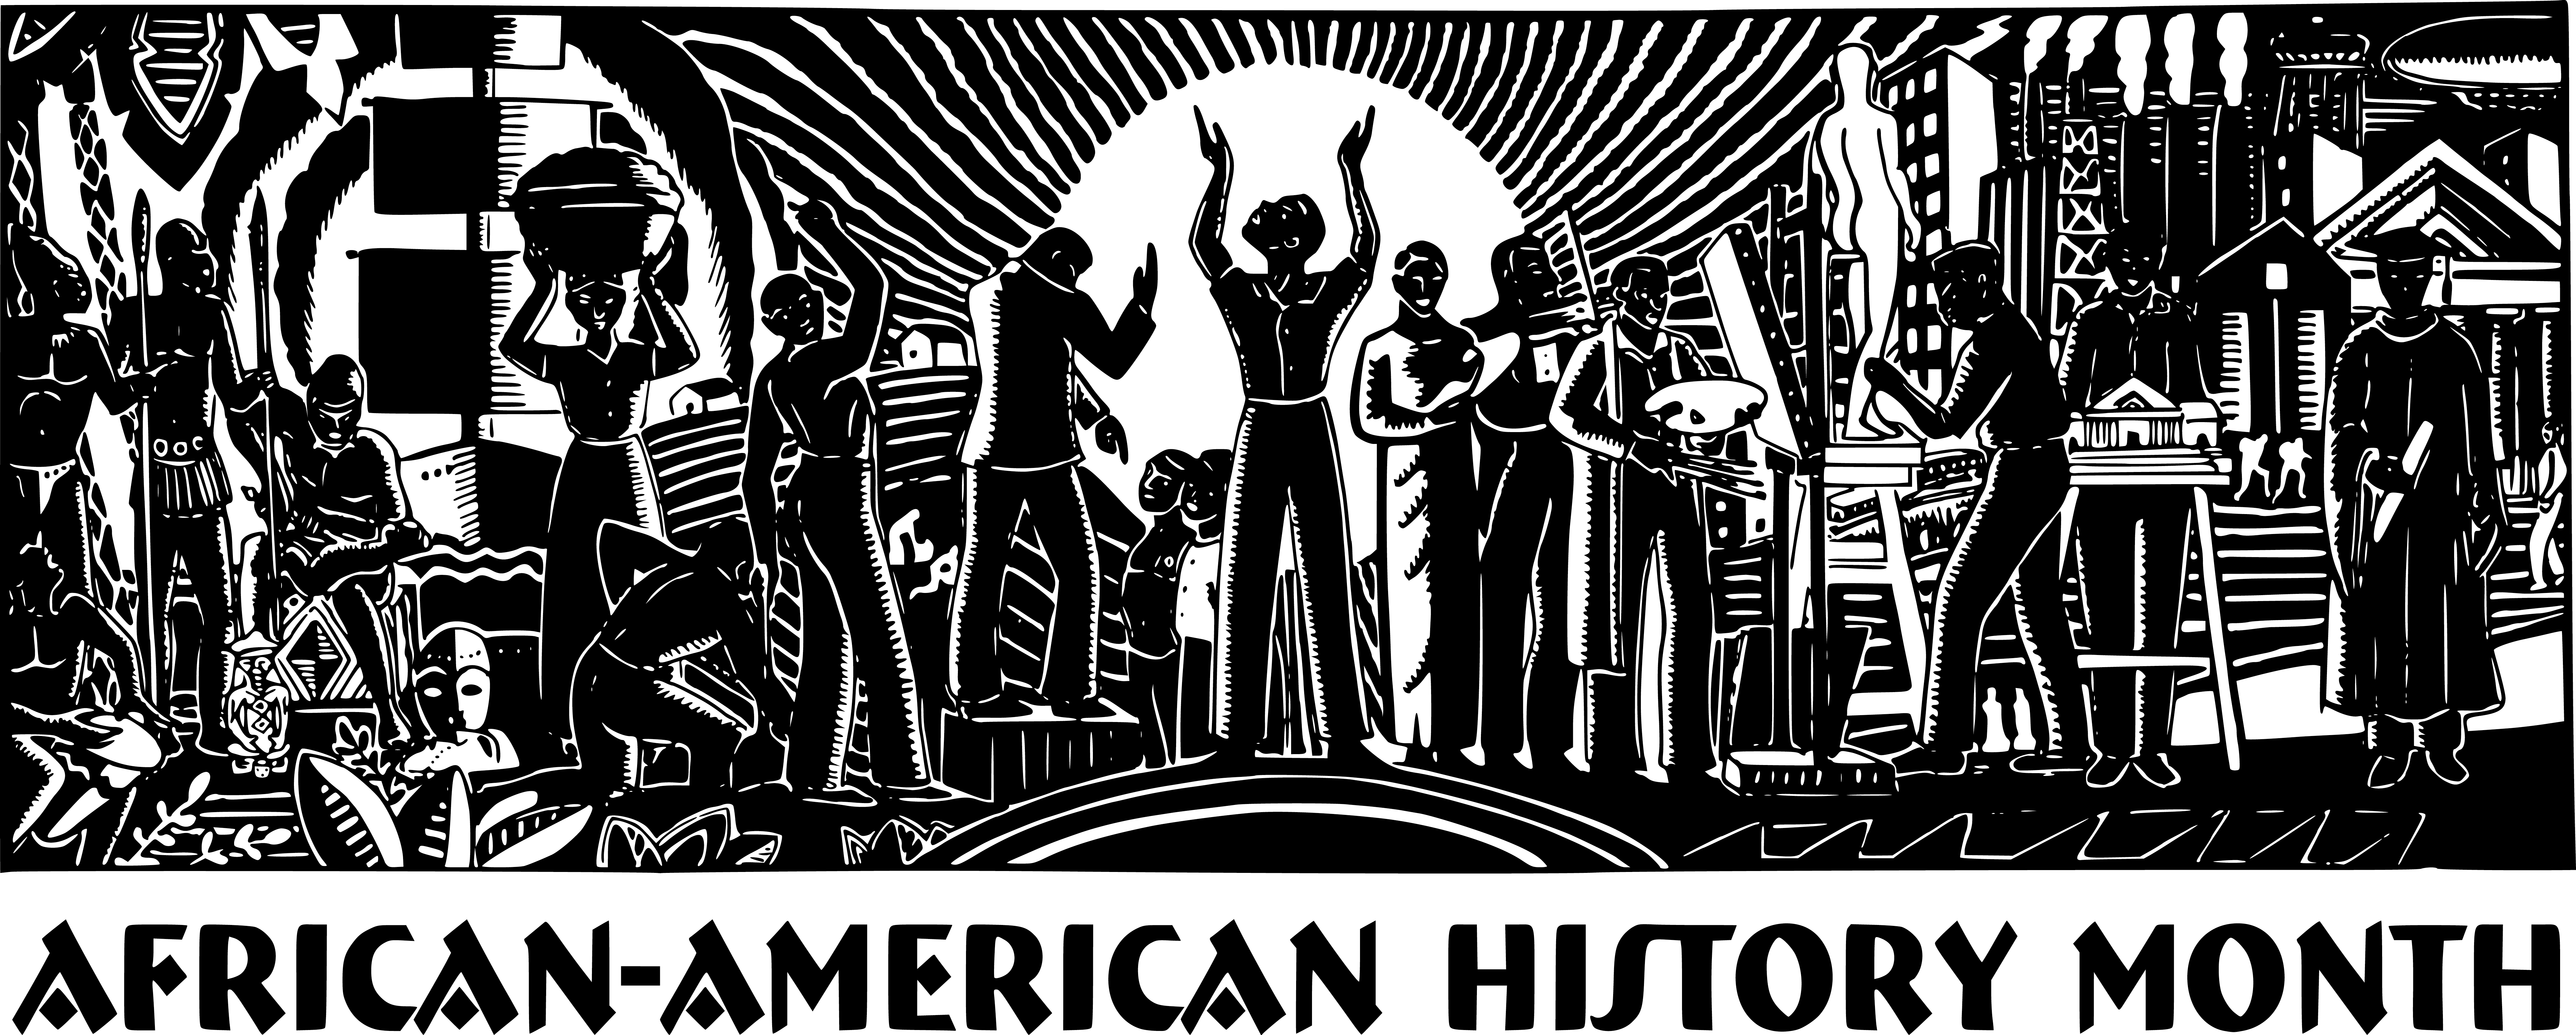 africa-american-history-month-black-history